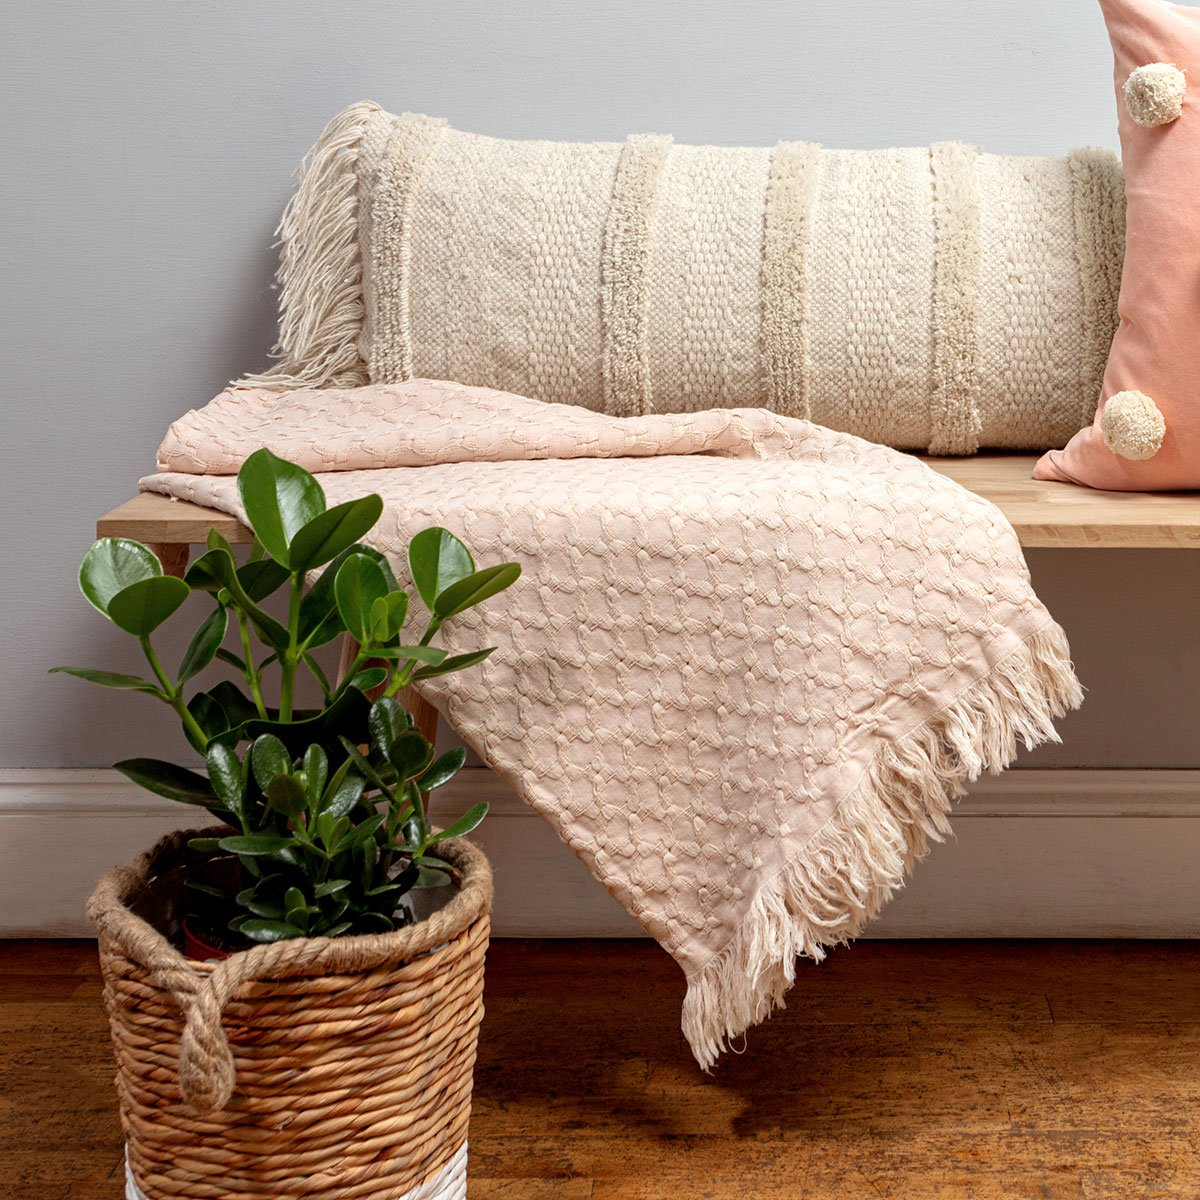 Blush Pink Cotton Throw by Chickidee